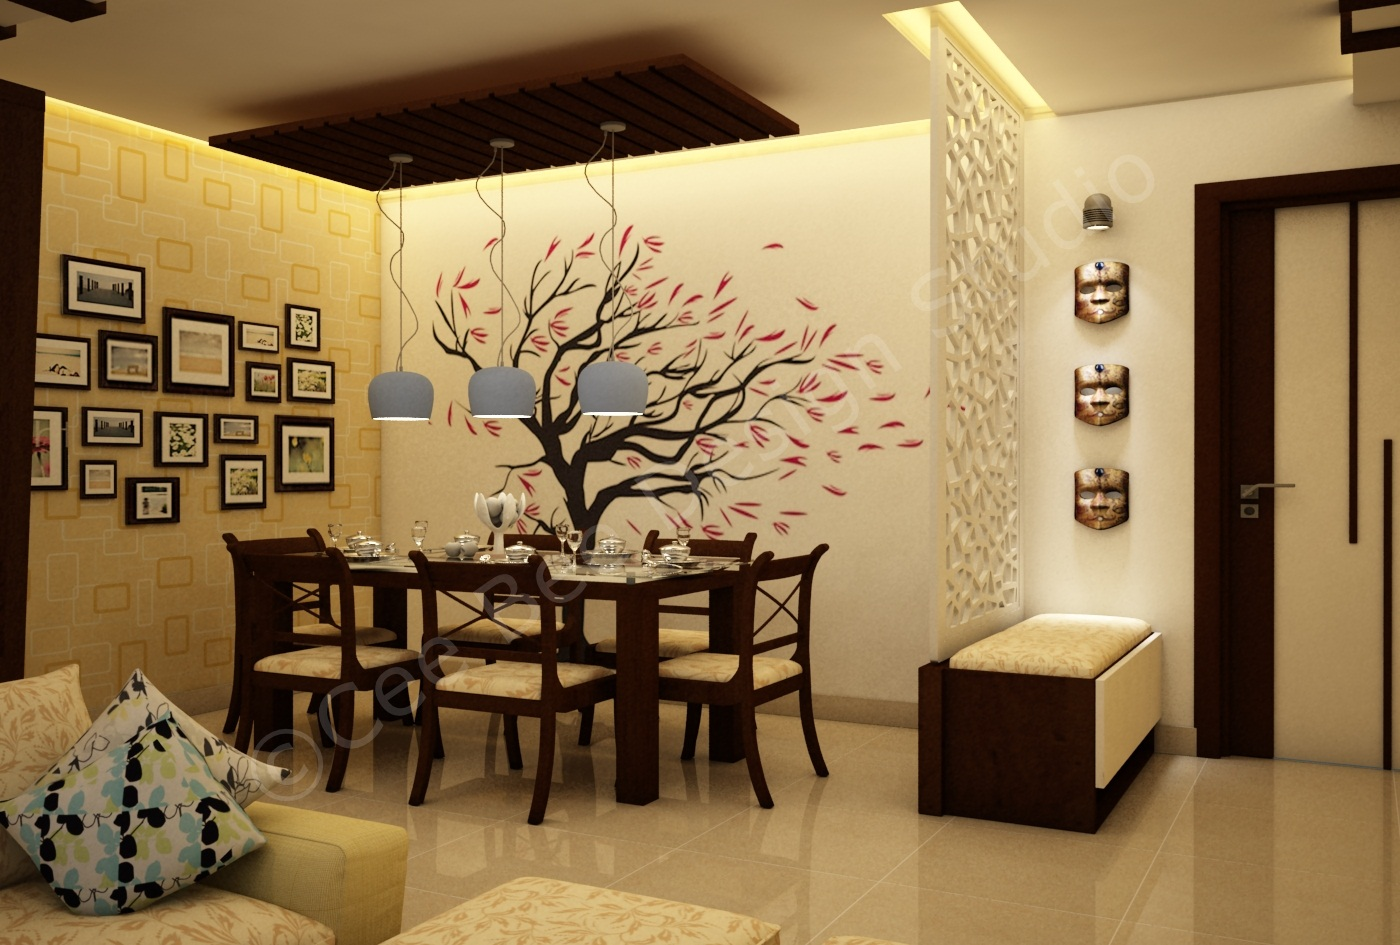 Creative Partition Wall Design Ideas Improving Open Small Spaces Dwell Of Decor  Best about Walls Extremely Useful